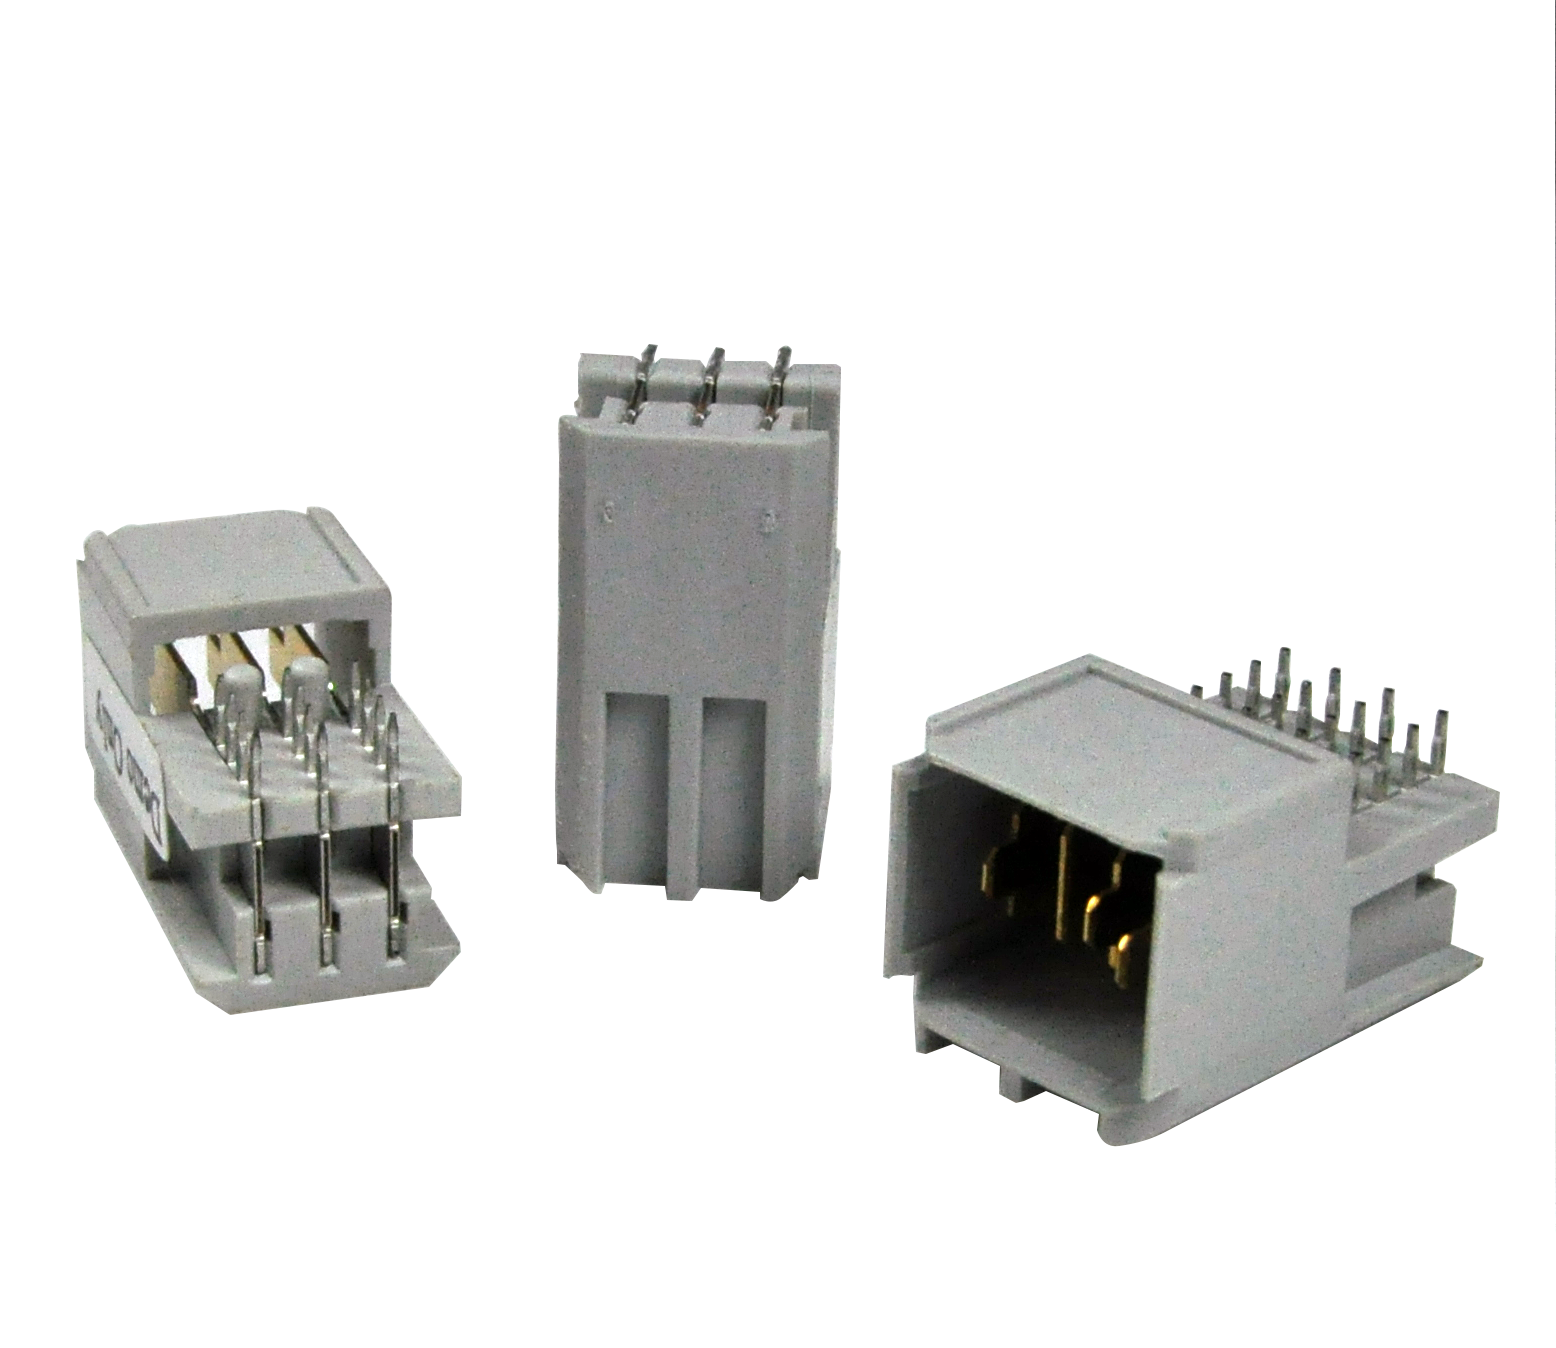 Embedded System Connectors & Components : Combo Power Connectors ...